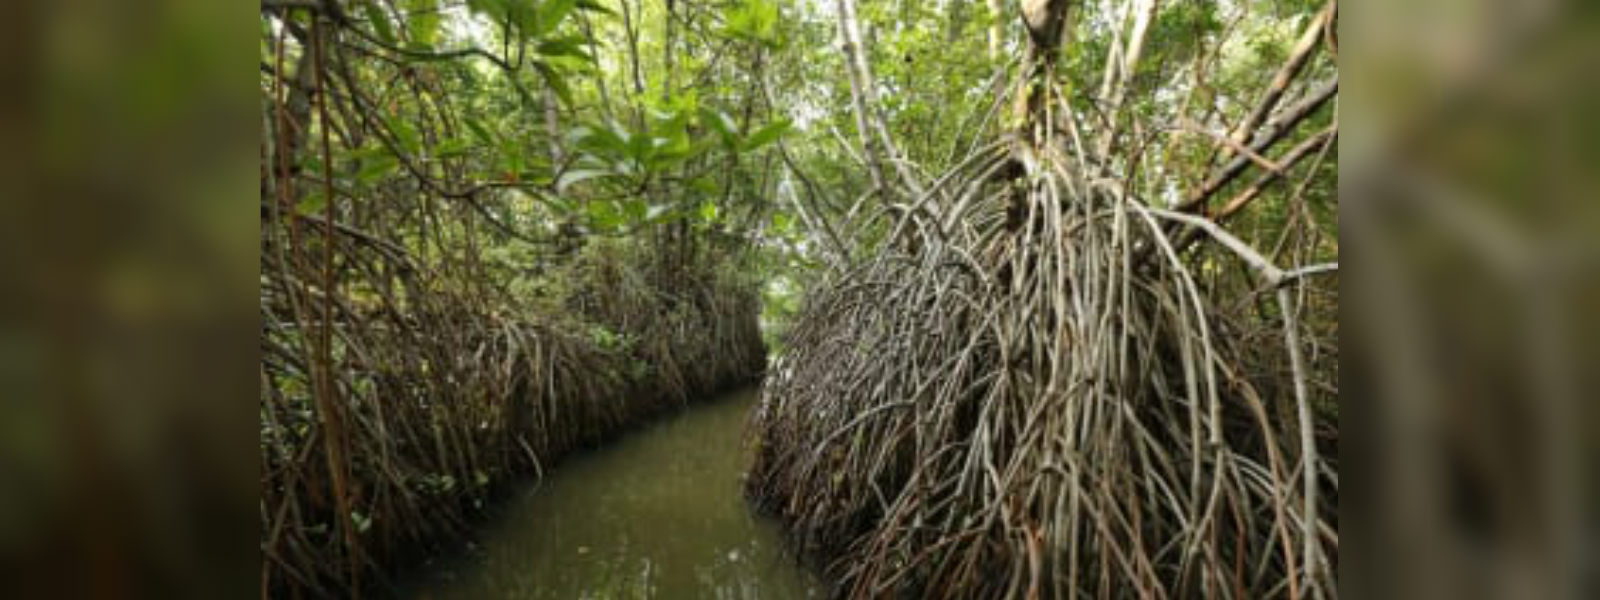 13 mangrove eco-systems to be declared as reserves